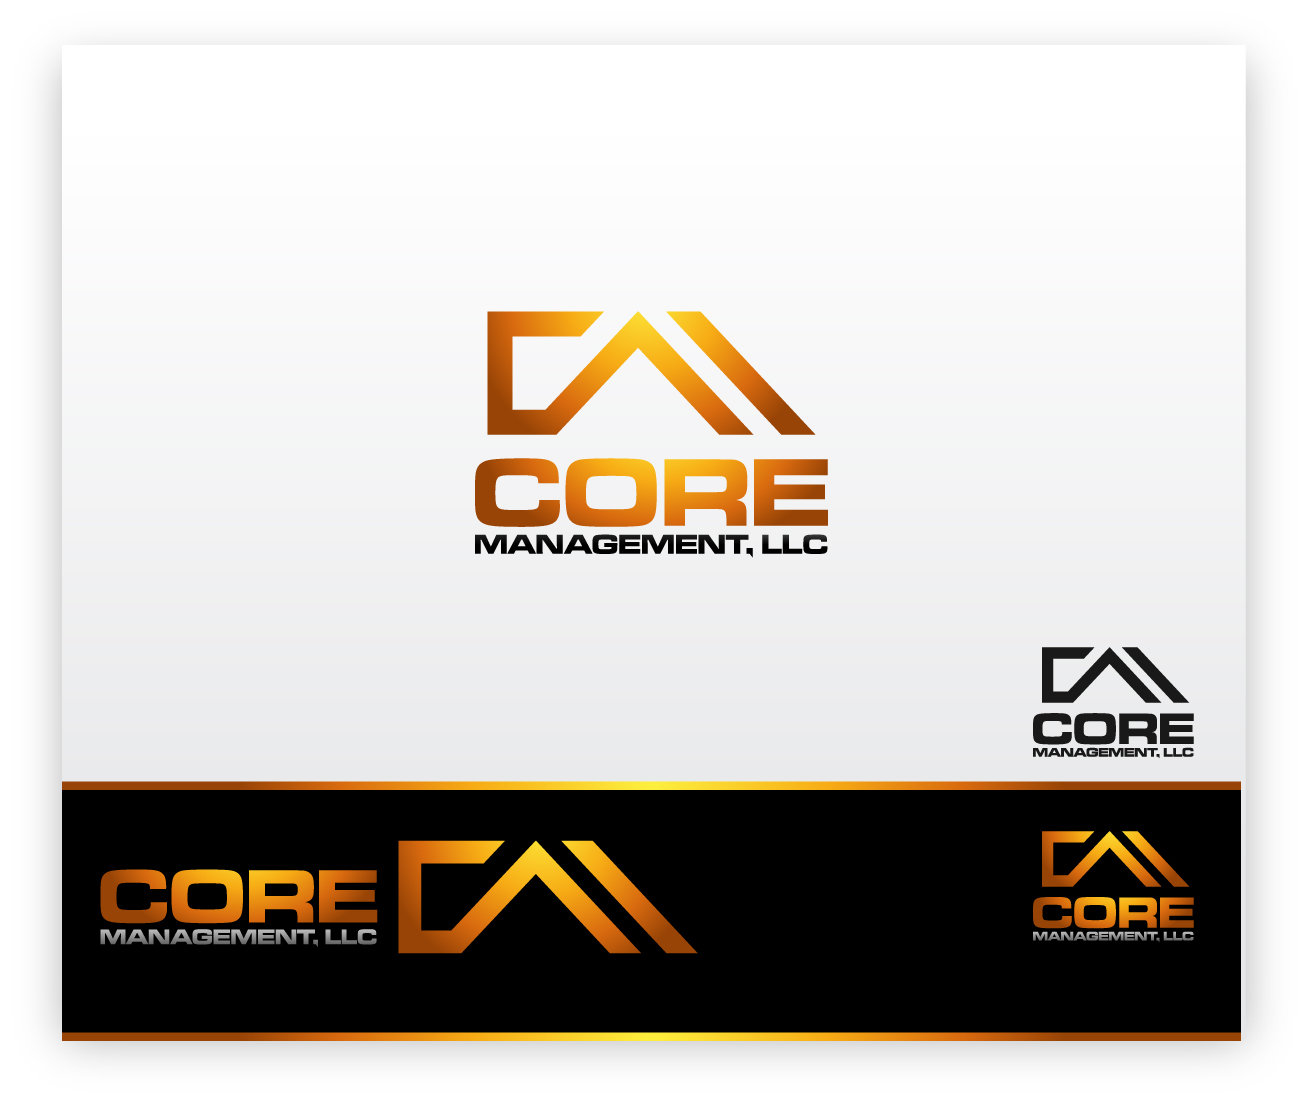 Logo Design by zoiDesign - Entry No. 140 in the Logo Design Contest Creative Logo Design for CORE Management, LLC.